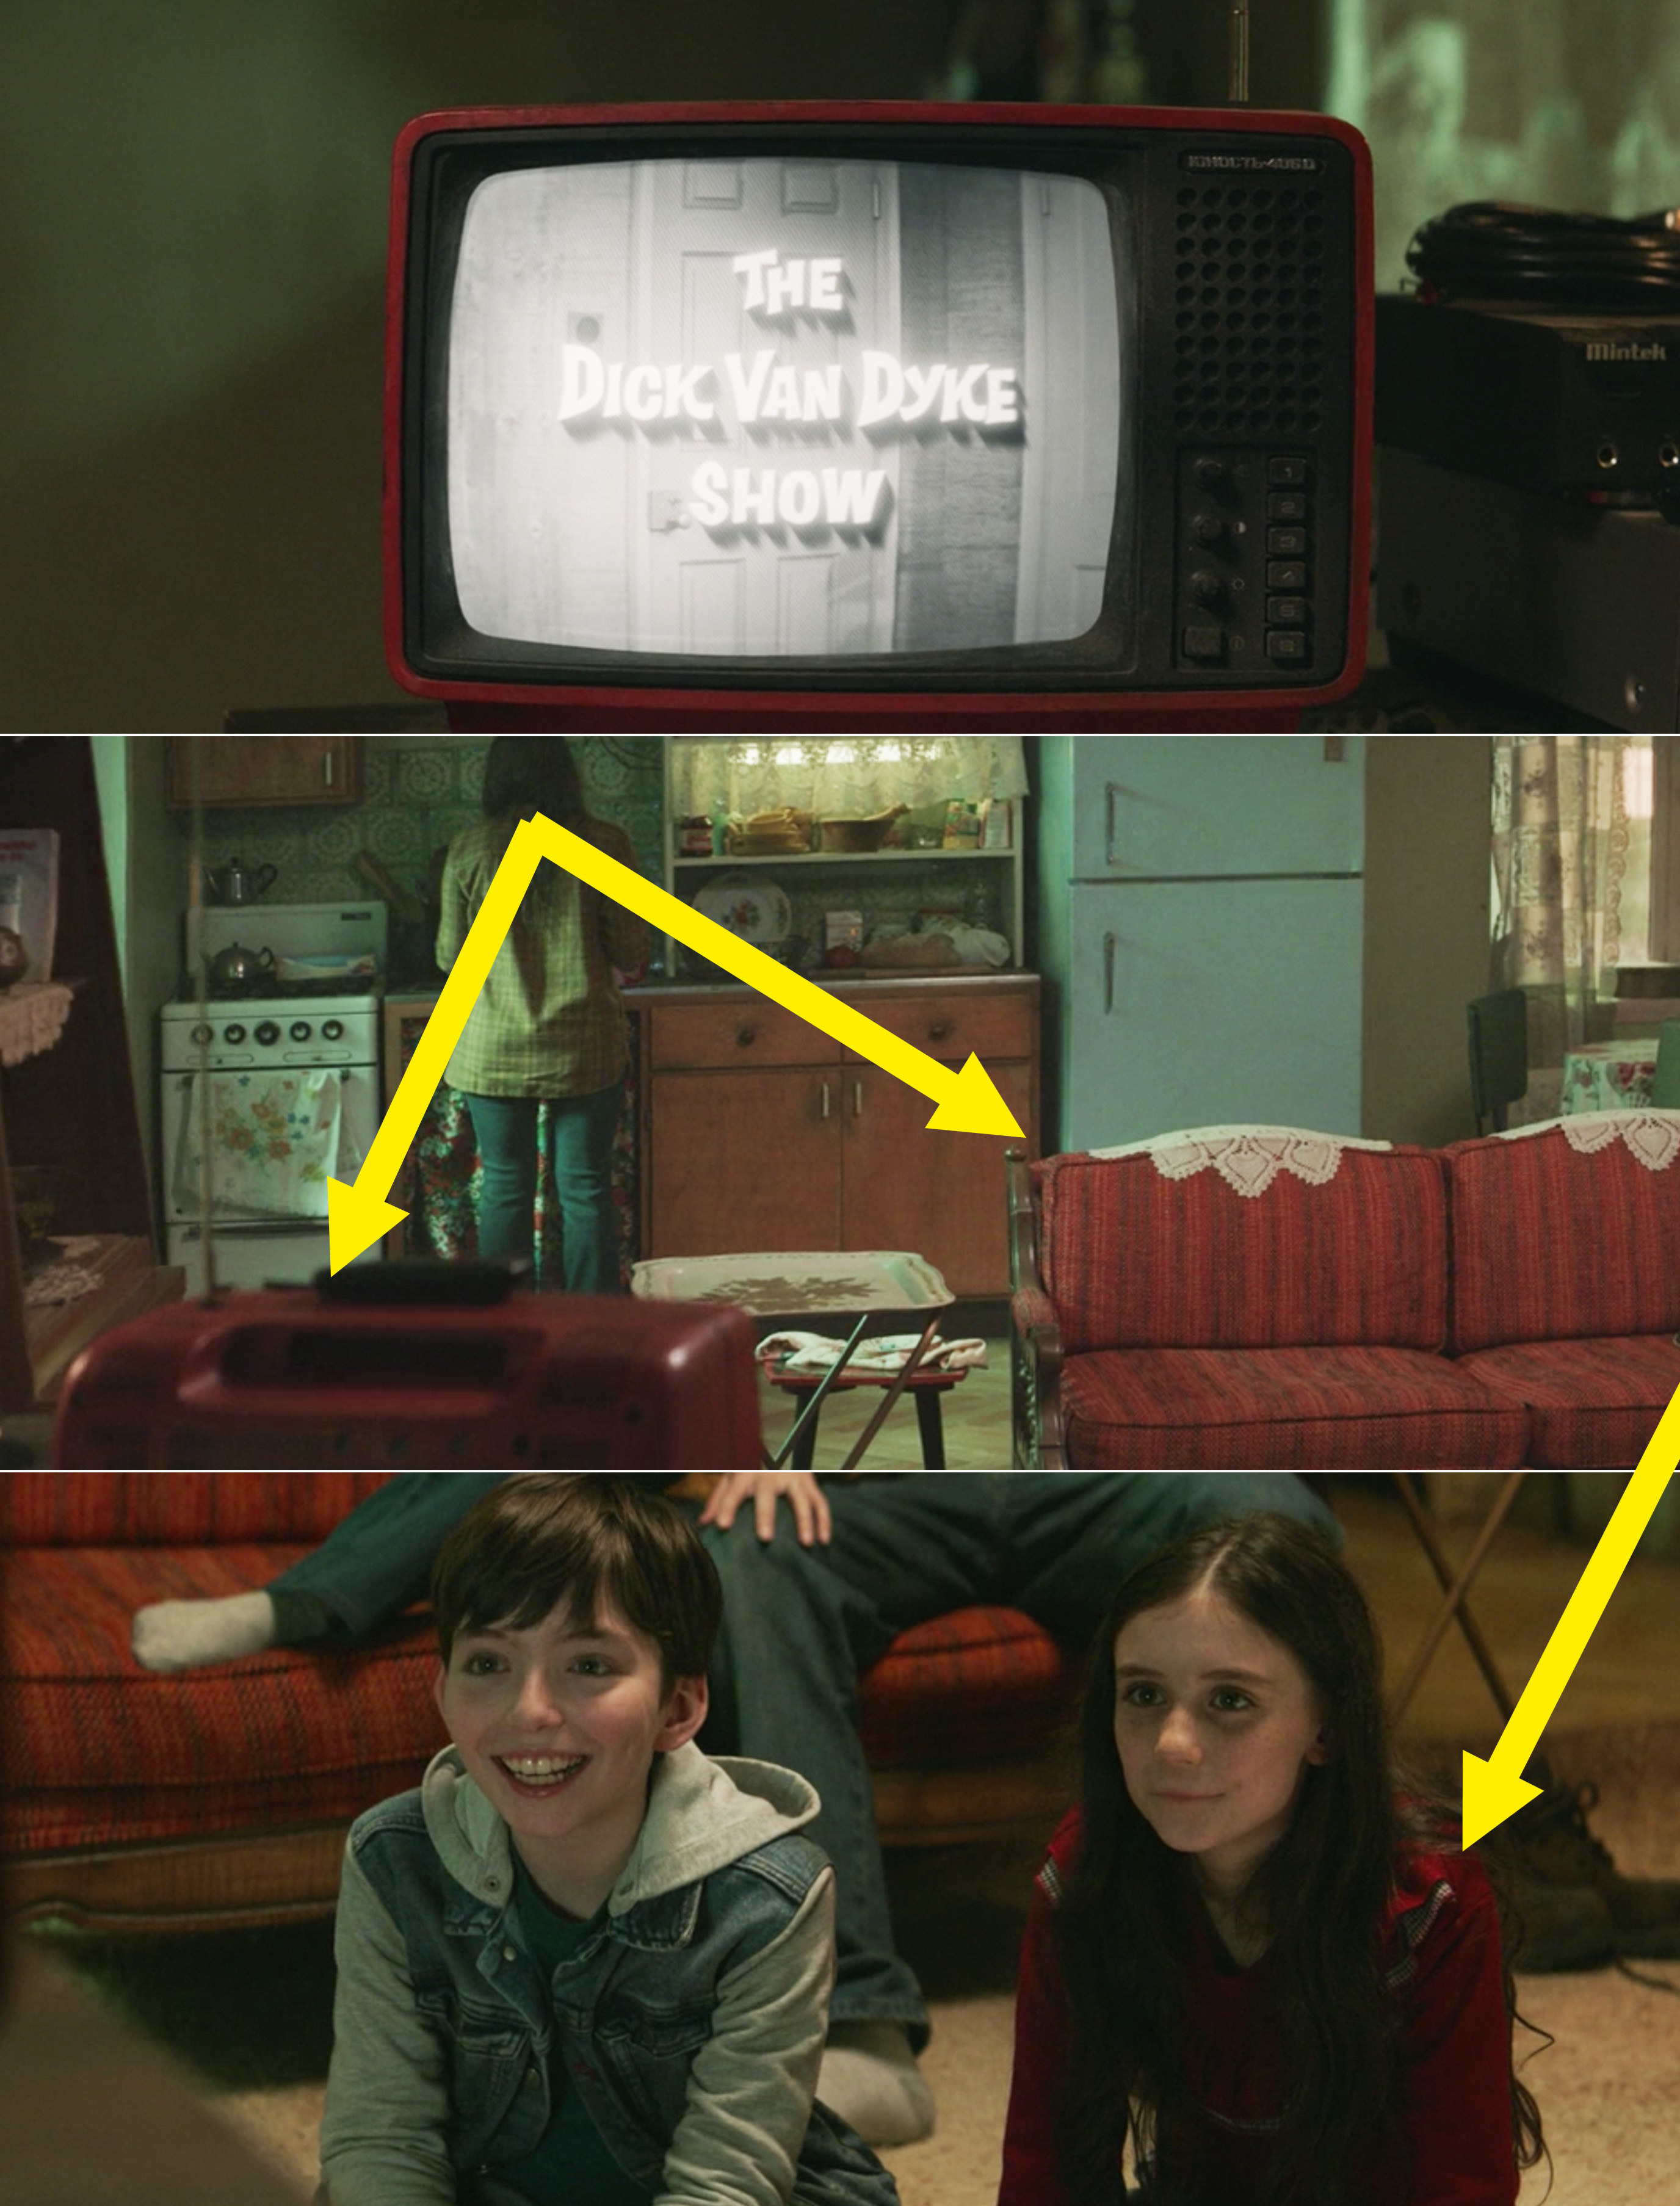 Arrows pointing to the back of the TV, which is red, the couch, and Wanda's red hoodie